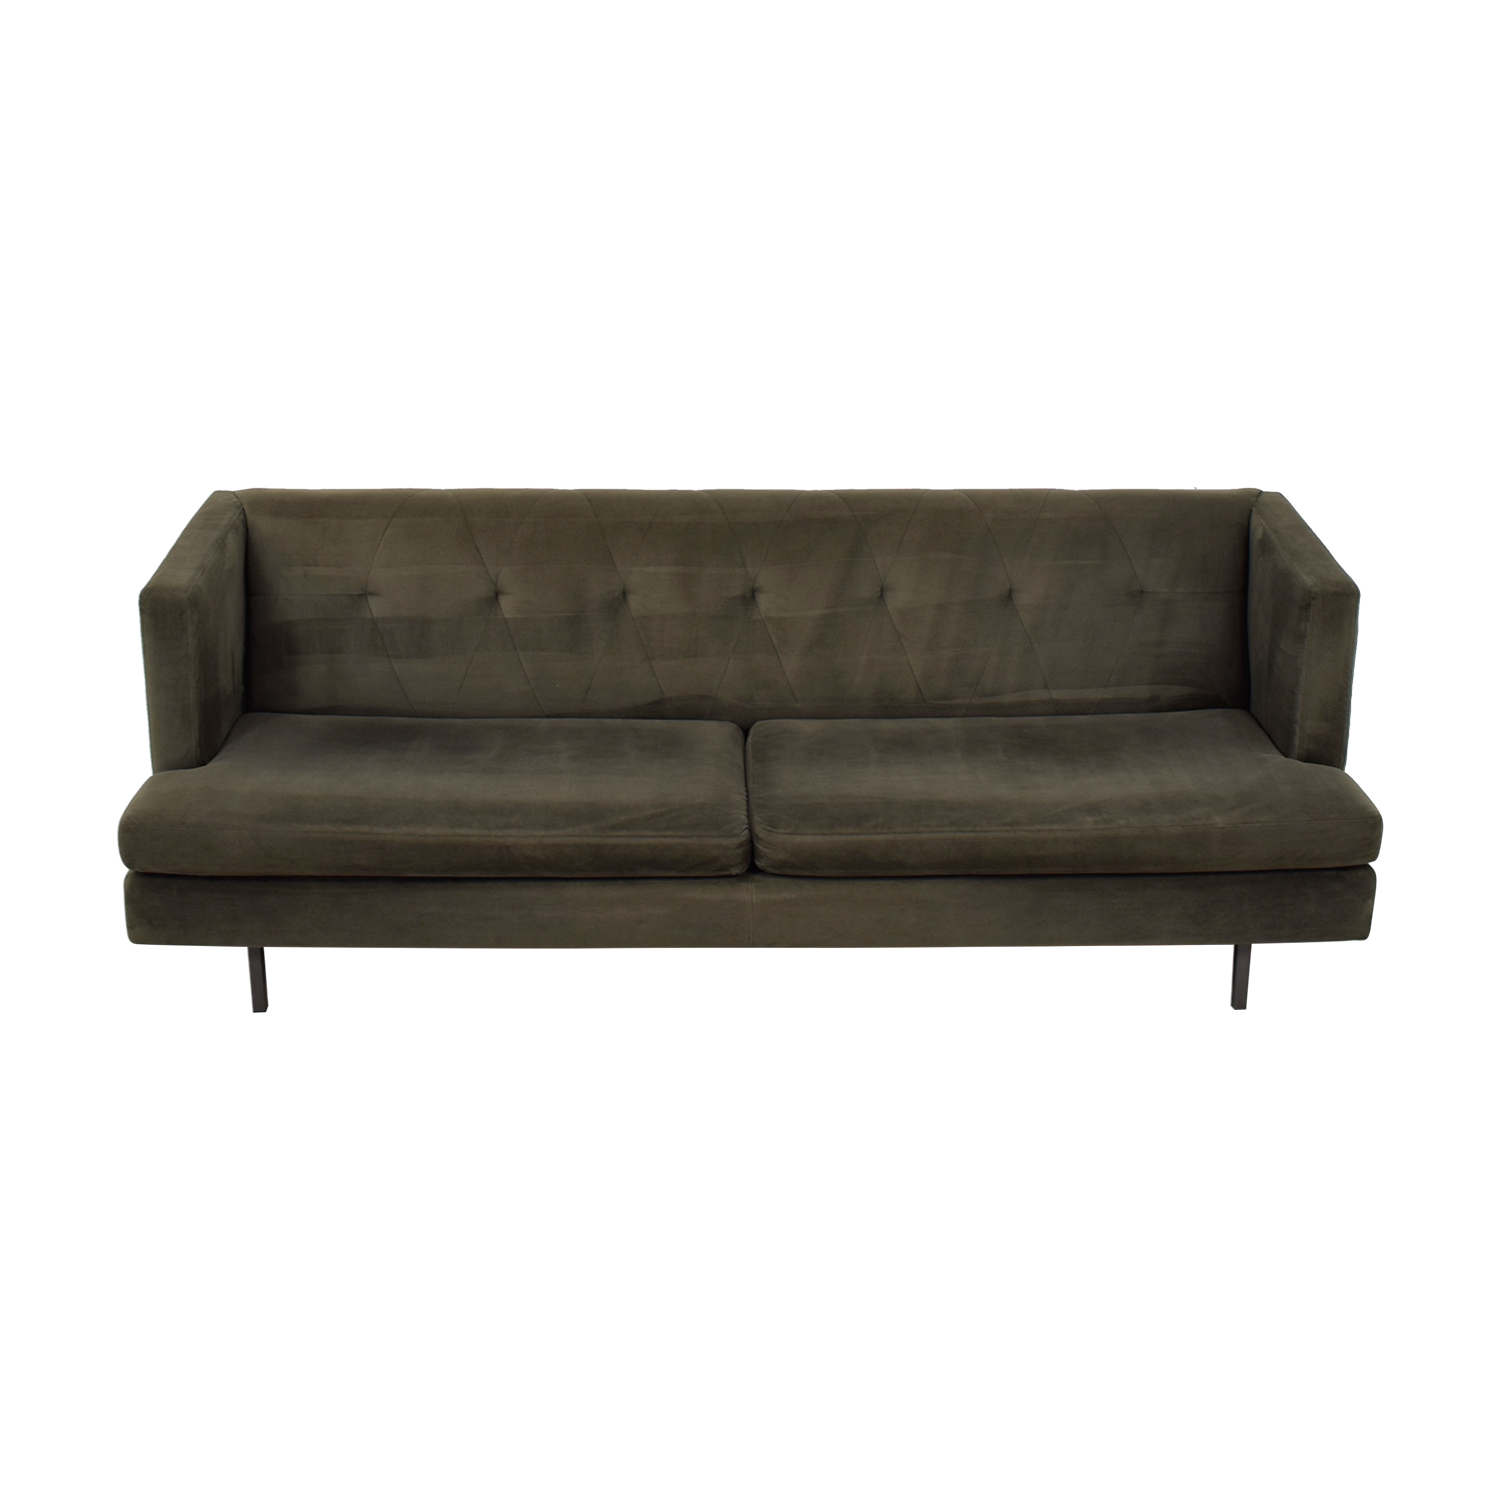 CB2 CB2 Avec Grey Sofa price